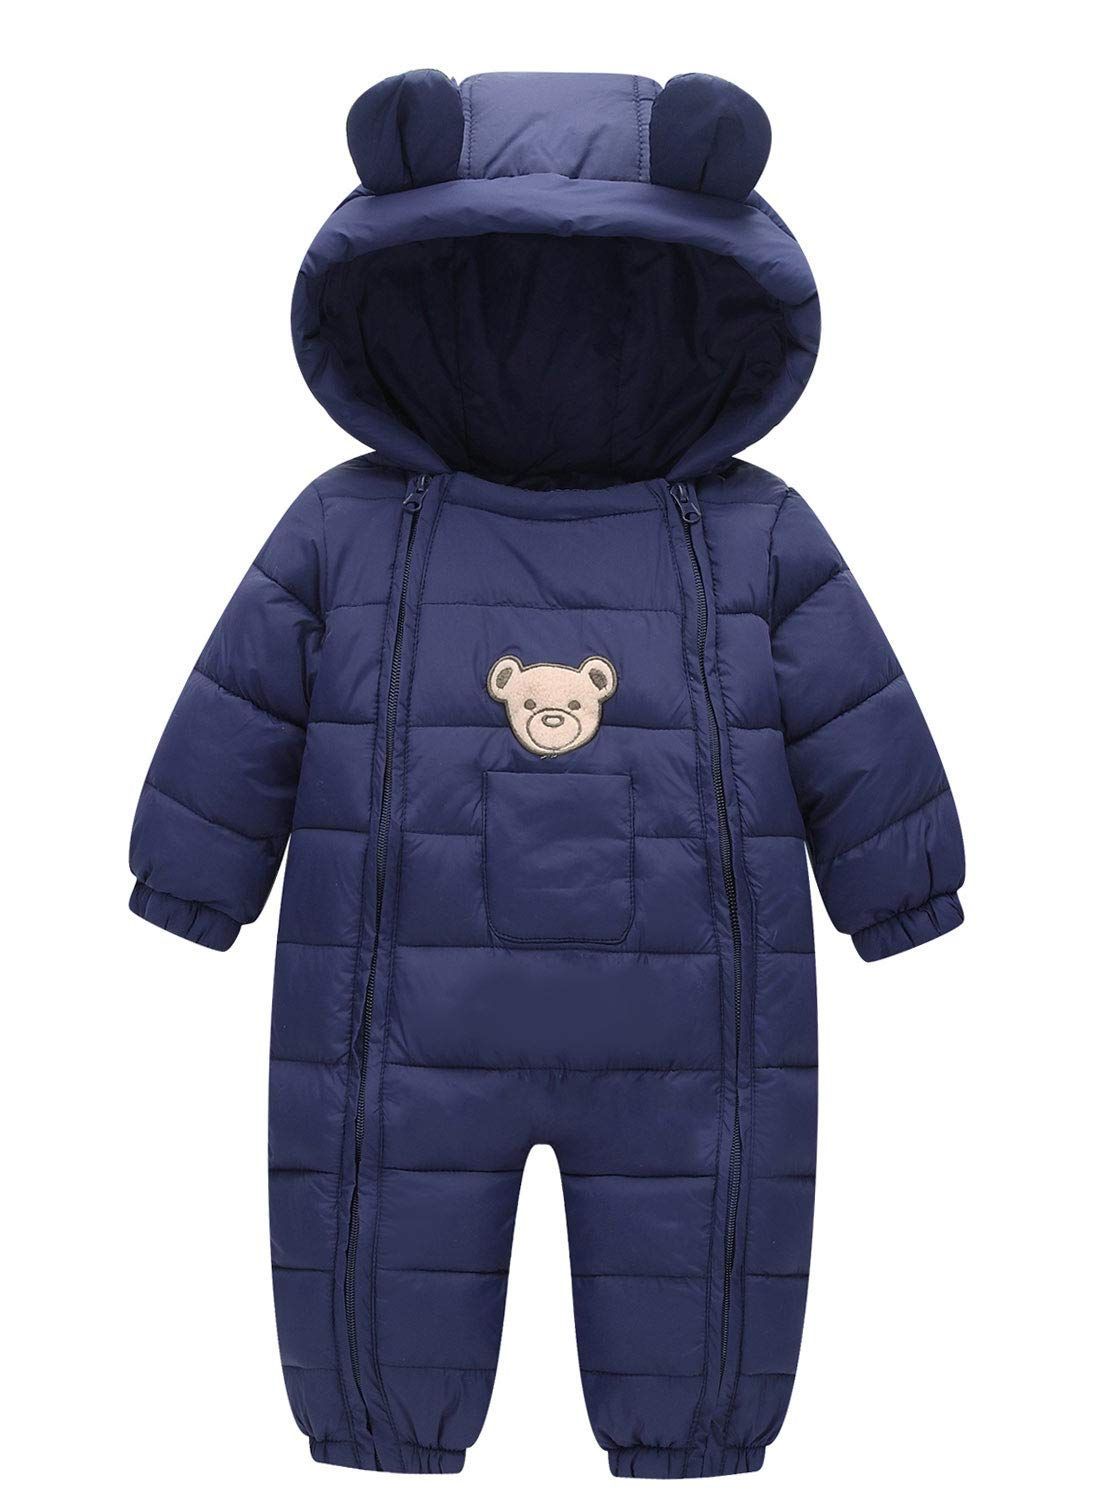 Happy Cherry Winter Bunting for Toddler Boys Girls Full Body Snowsuit Winter Thermal Coat One Piece Snow Wear Navy 12-18 Months by Happy Cherry